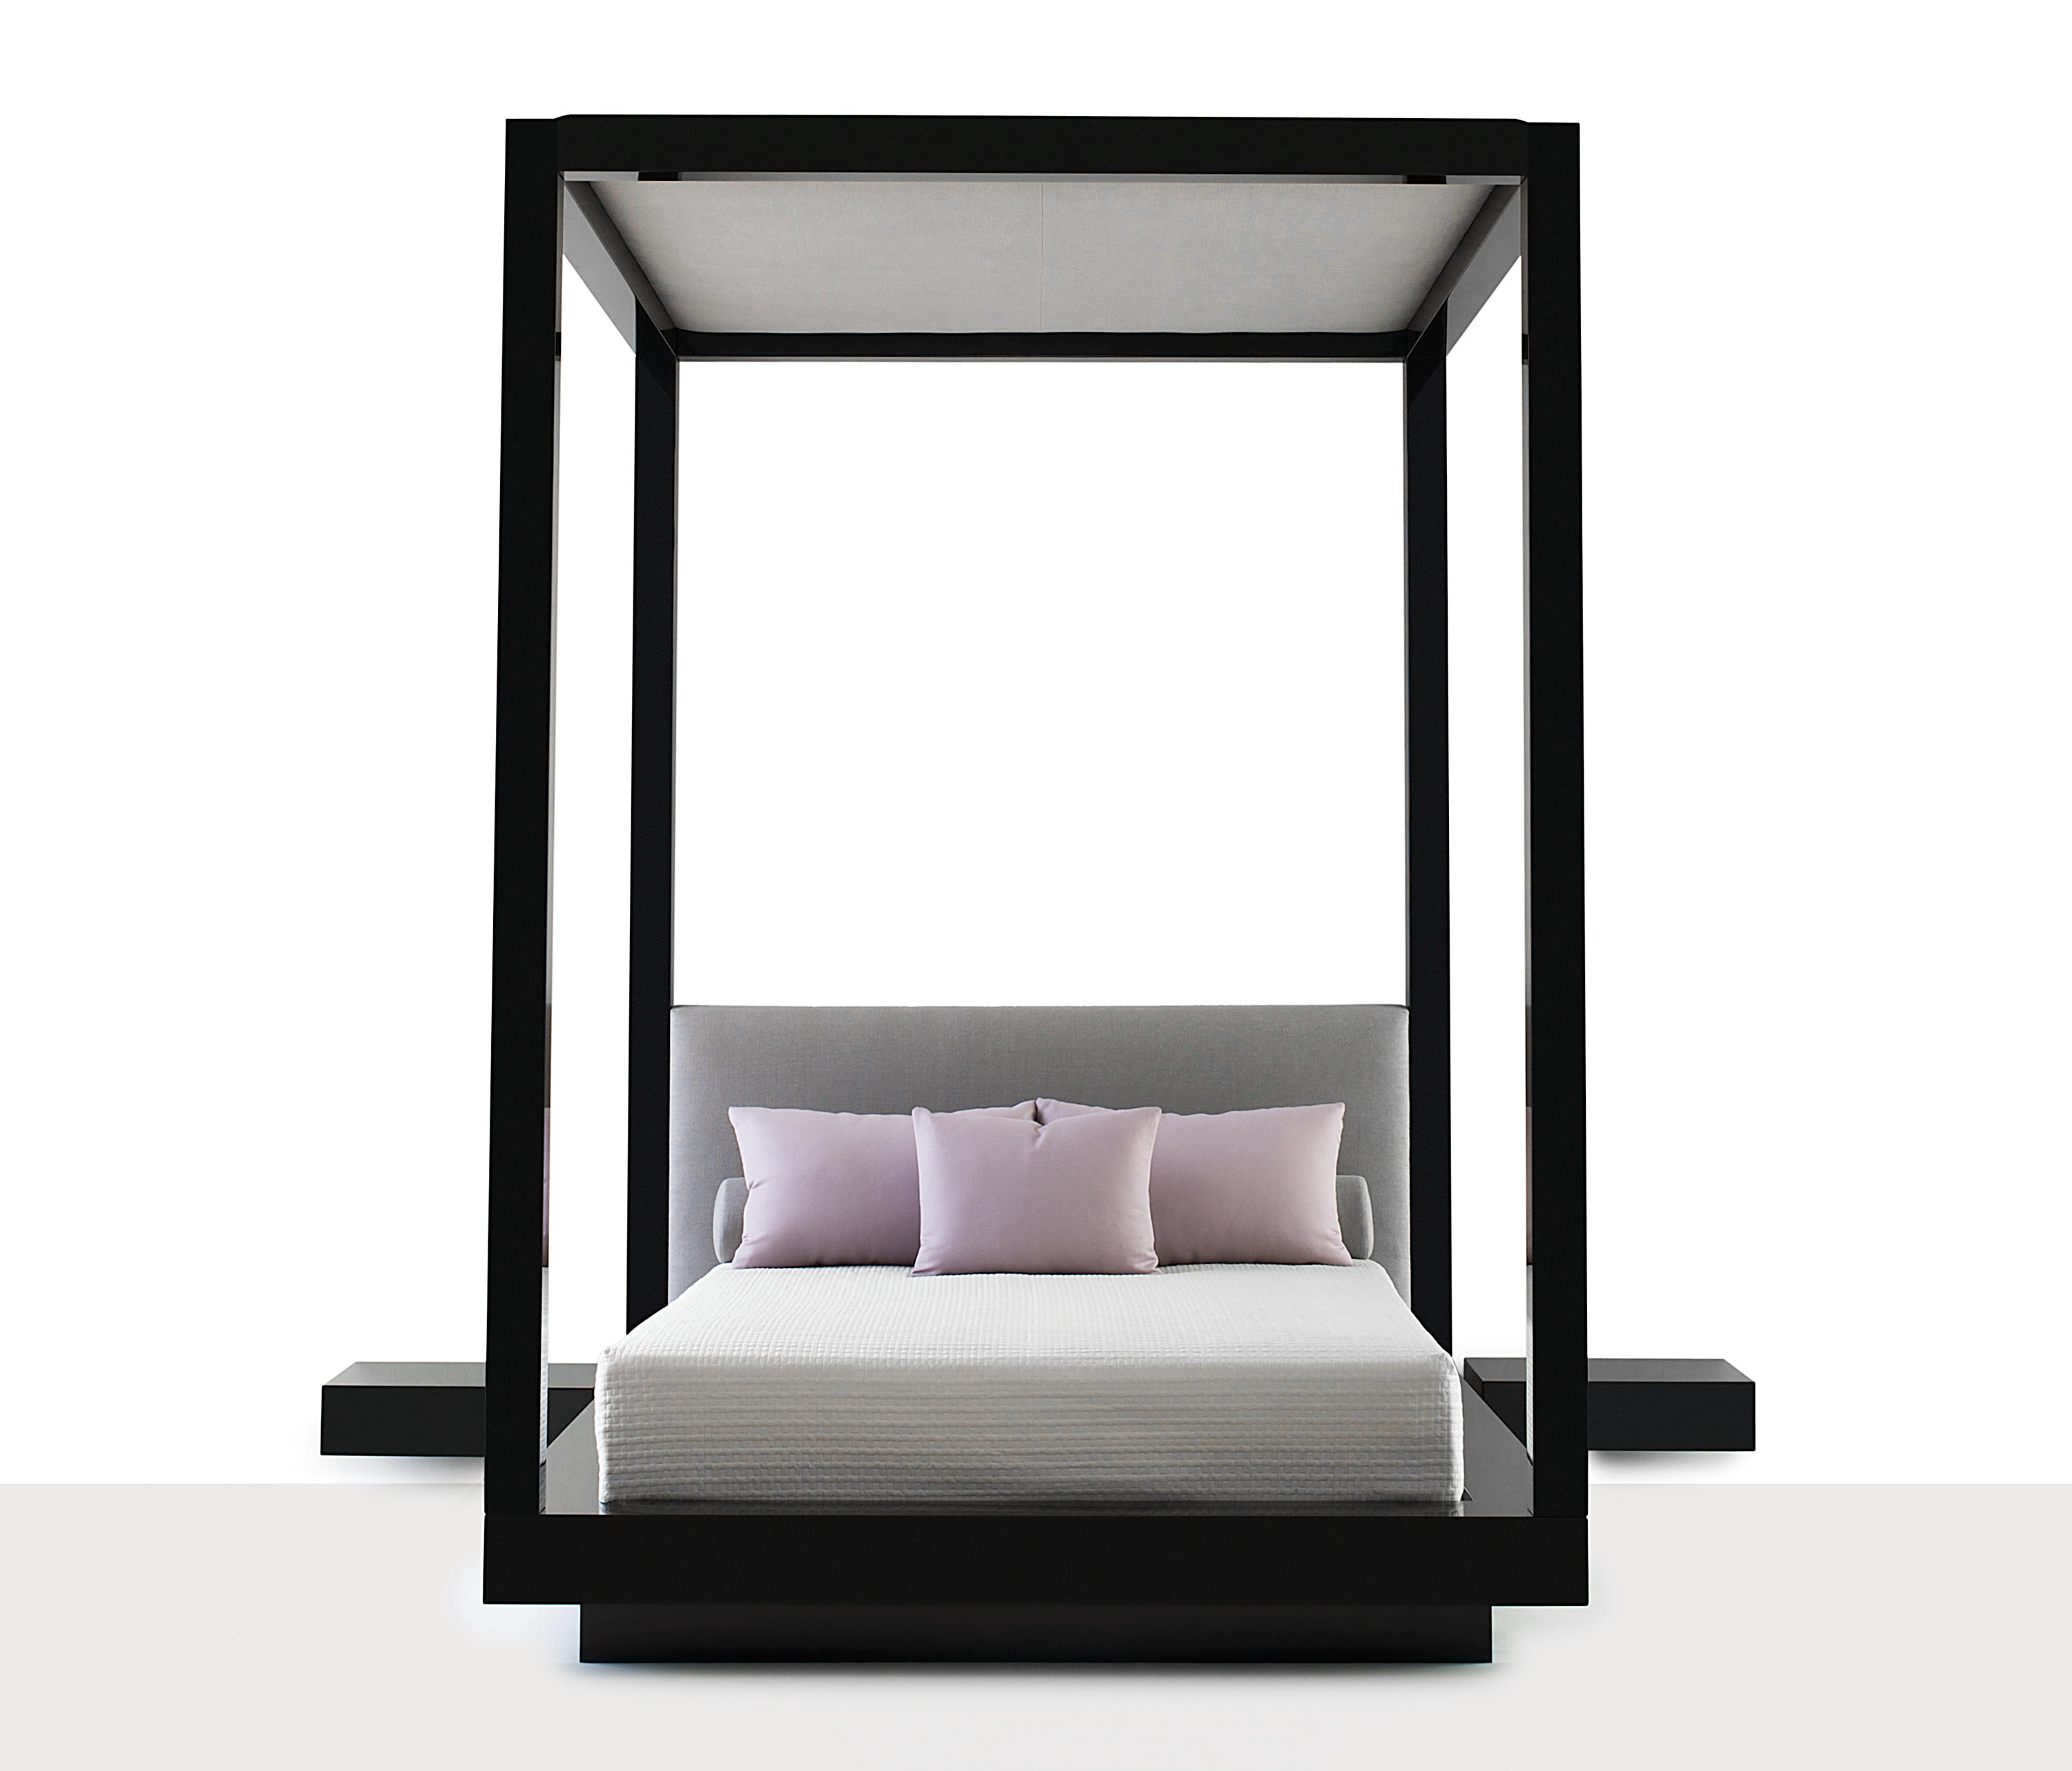 Lit Brooklyn Alinea Plaza Bed Beds From Naula Architonic